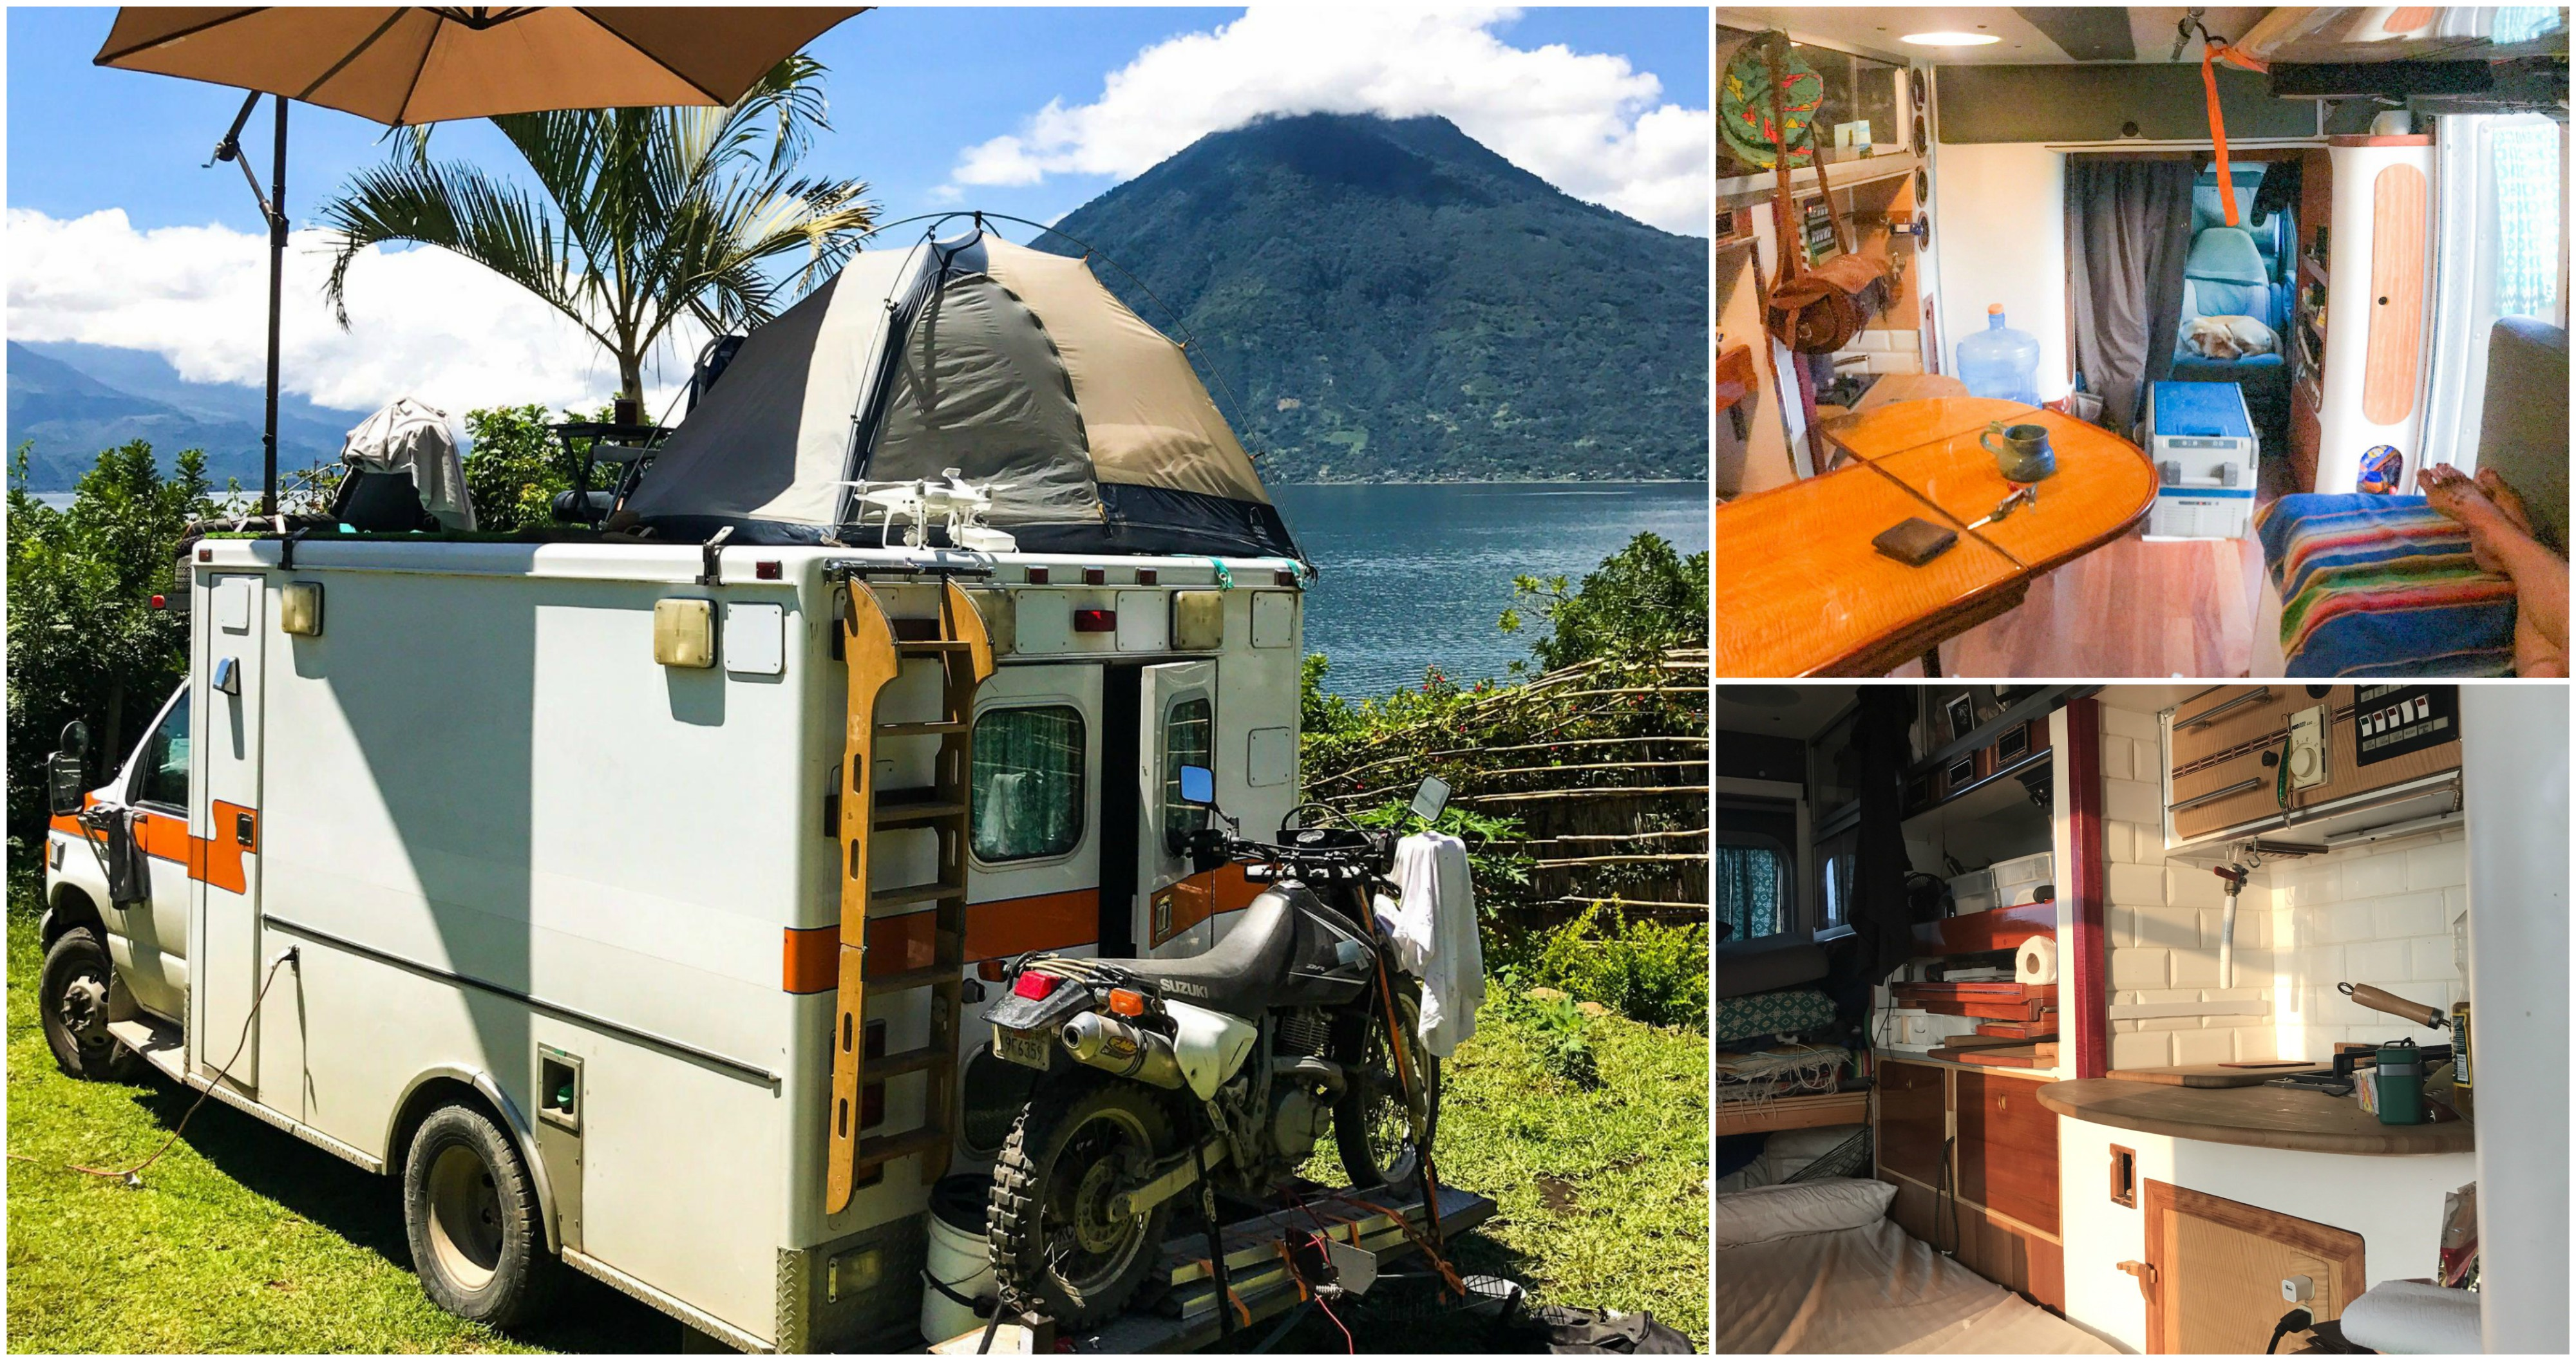 He Bought a Used Ambulance, Turned it into his Home, and Drove South to the Tropics